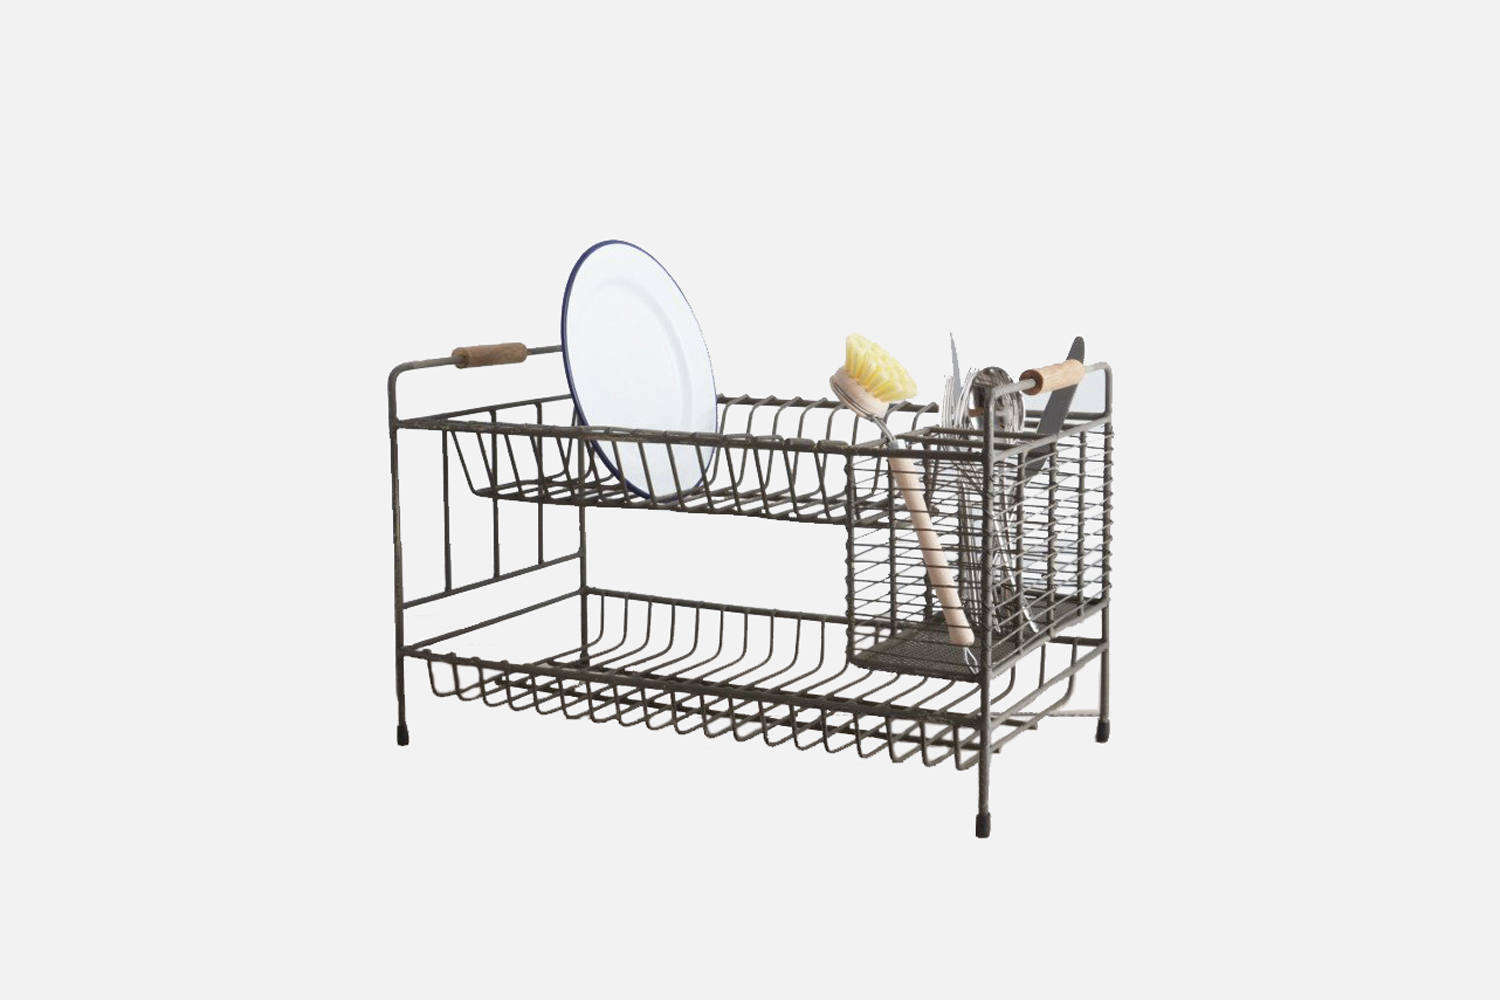 The Vintage Draining Rack makes use of vertical space with two levels of stacking and a section for cutlery; £45 at Garden Trading.